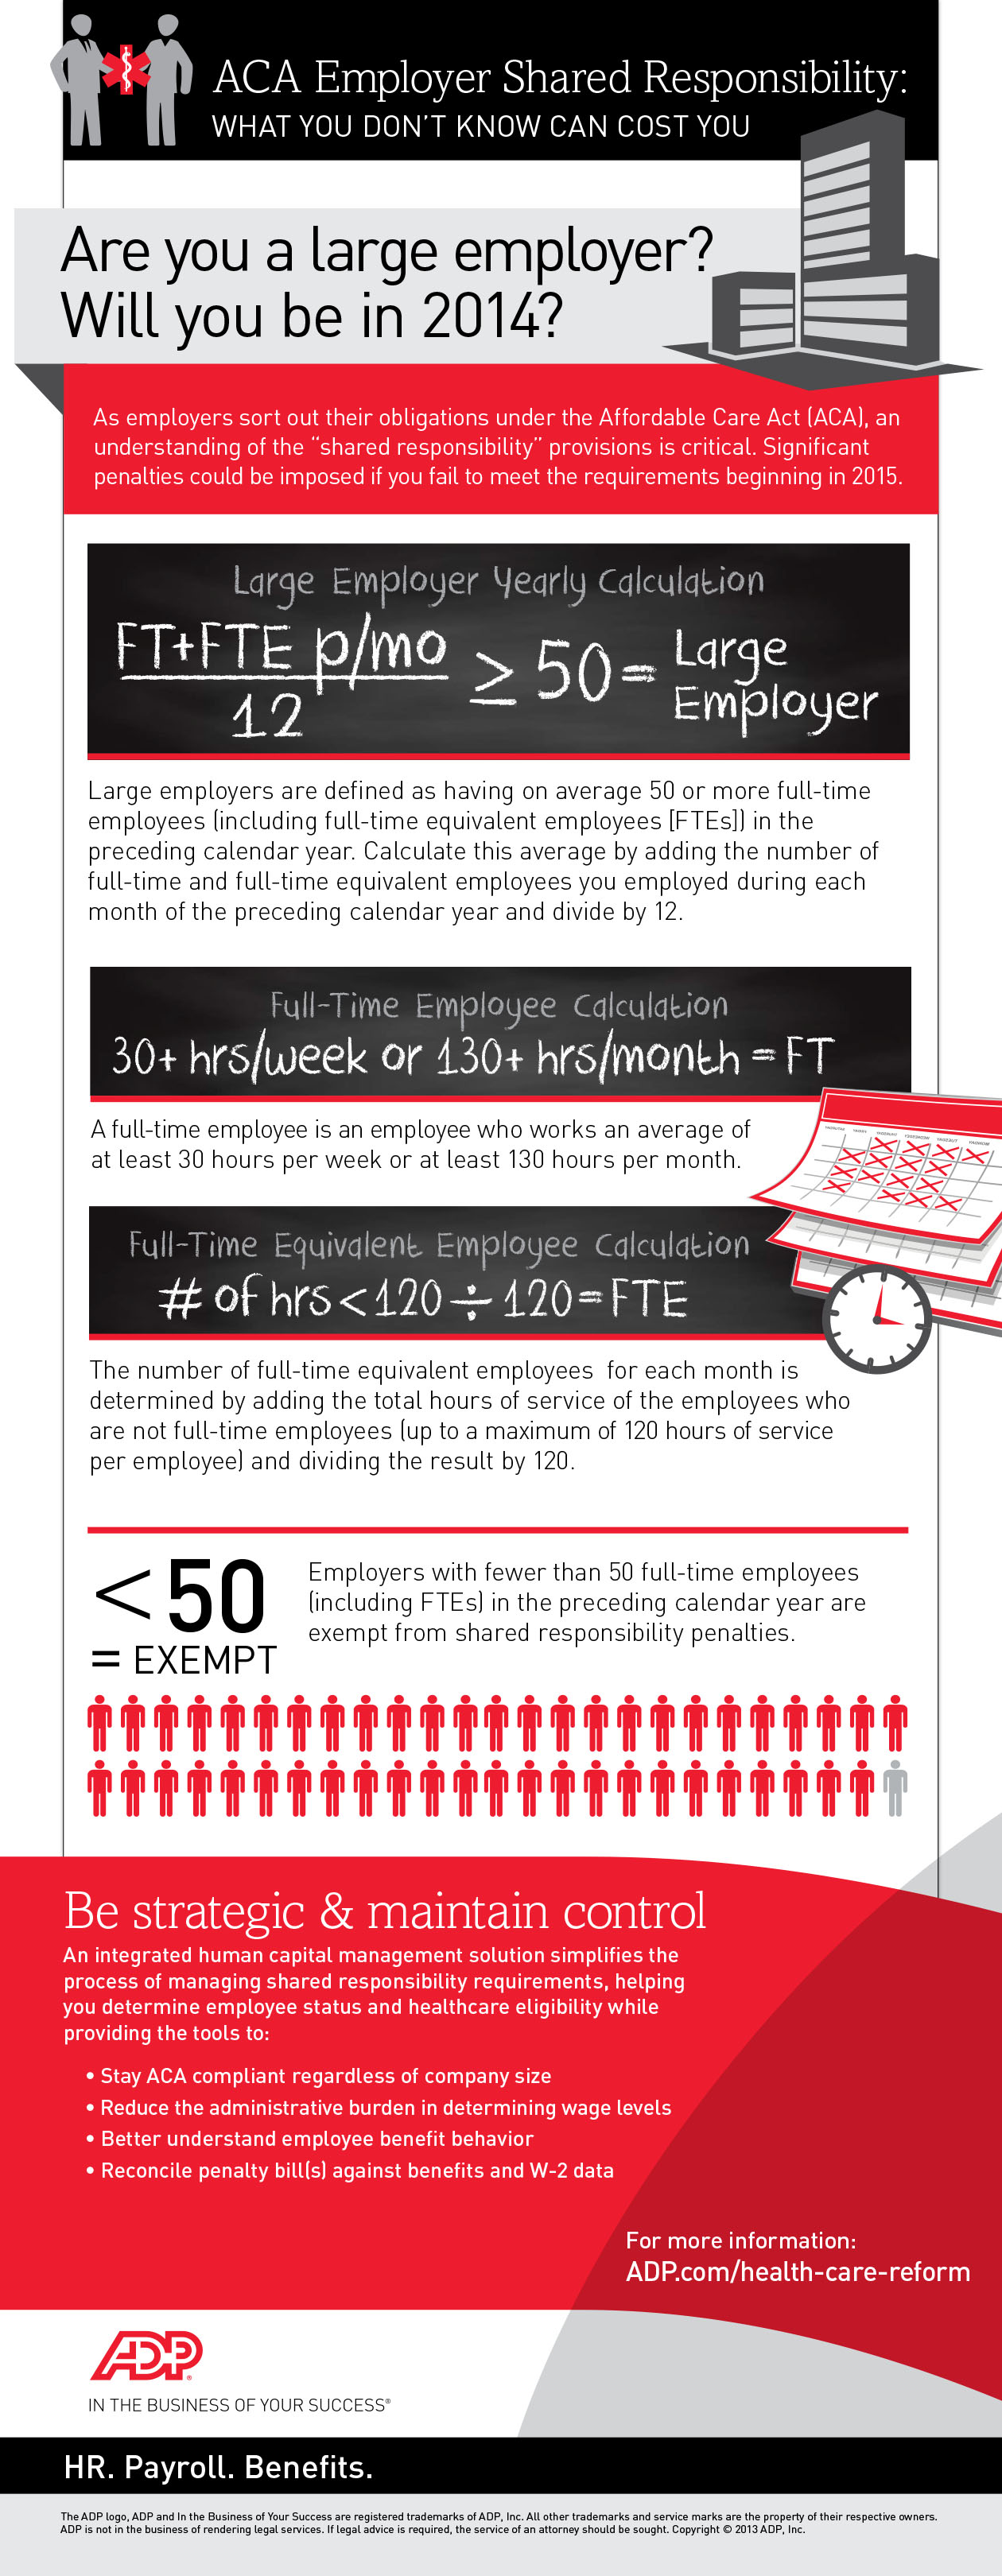 Health Care Reform Shared Responsibility infographic